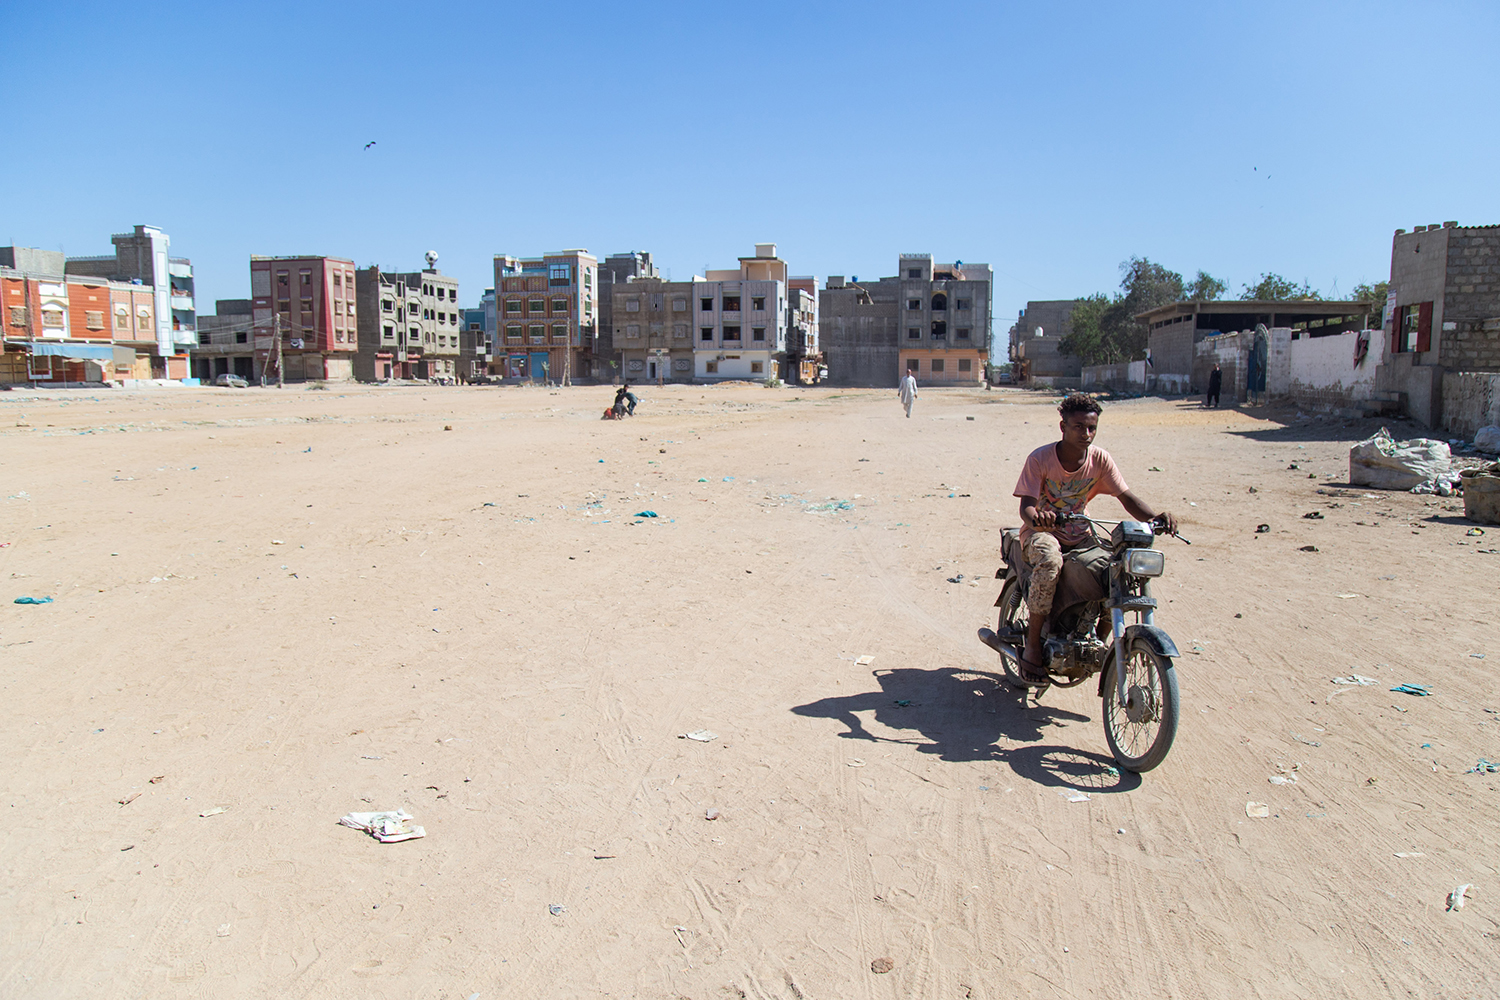 A boy rides a motorcycle through an empty dirt log near a midwife's clinic in Karachi.